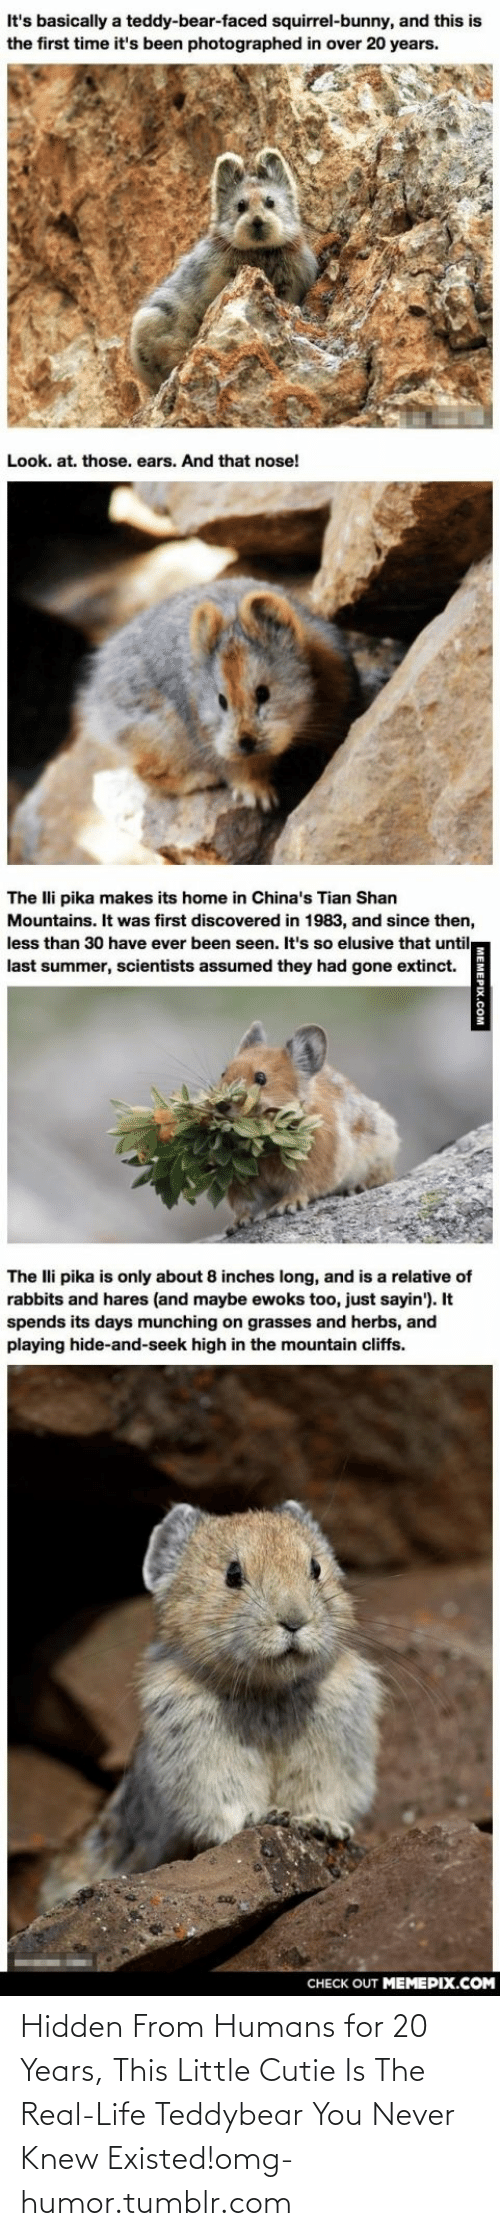 Playing Hide: It's basically a teddy-bear-faced squirrel-bunny, and this is  the first time it's been photographed in over 20 years.  Look. at. those. ears. And that nose!  The Ili pika makes its home in China's Tian Shan  Mountains. It was first discovered in 1983, and since then,  less than 30 have ever been seen. It's so elusive that until  last summer, scientists assumed they had gone extinct.  The lli pika is only about 8 inches long, and is a relative of  rabbits and hares (and maybe ewoks too, just sayin'). It  spends its days munching on grasses and herbs, and  playing hide-and-seek high in the mountain cliffs.  CНЕCK OUT MЕМЕРIХ.COM  MEMEPIX.COM Hidden From Humans for 20 Years, This Little Cutie Is The Real-Life Teddybear You Never Knew Existed!omg-humor.tumblr.com